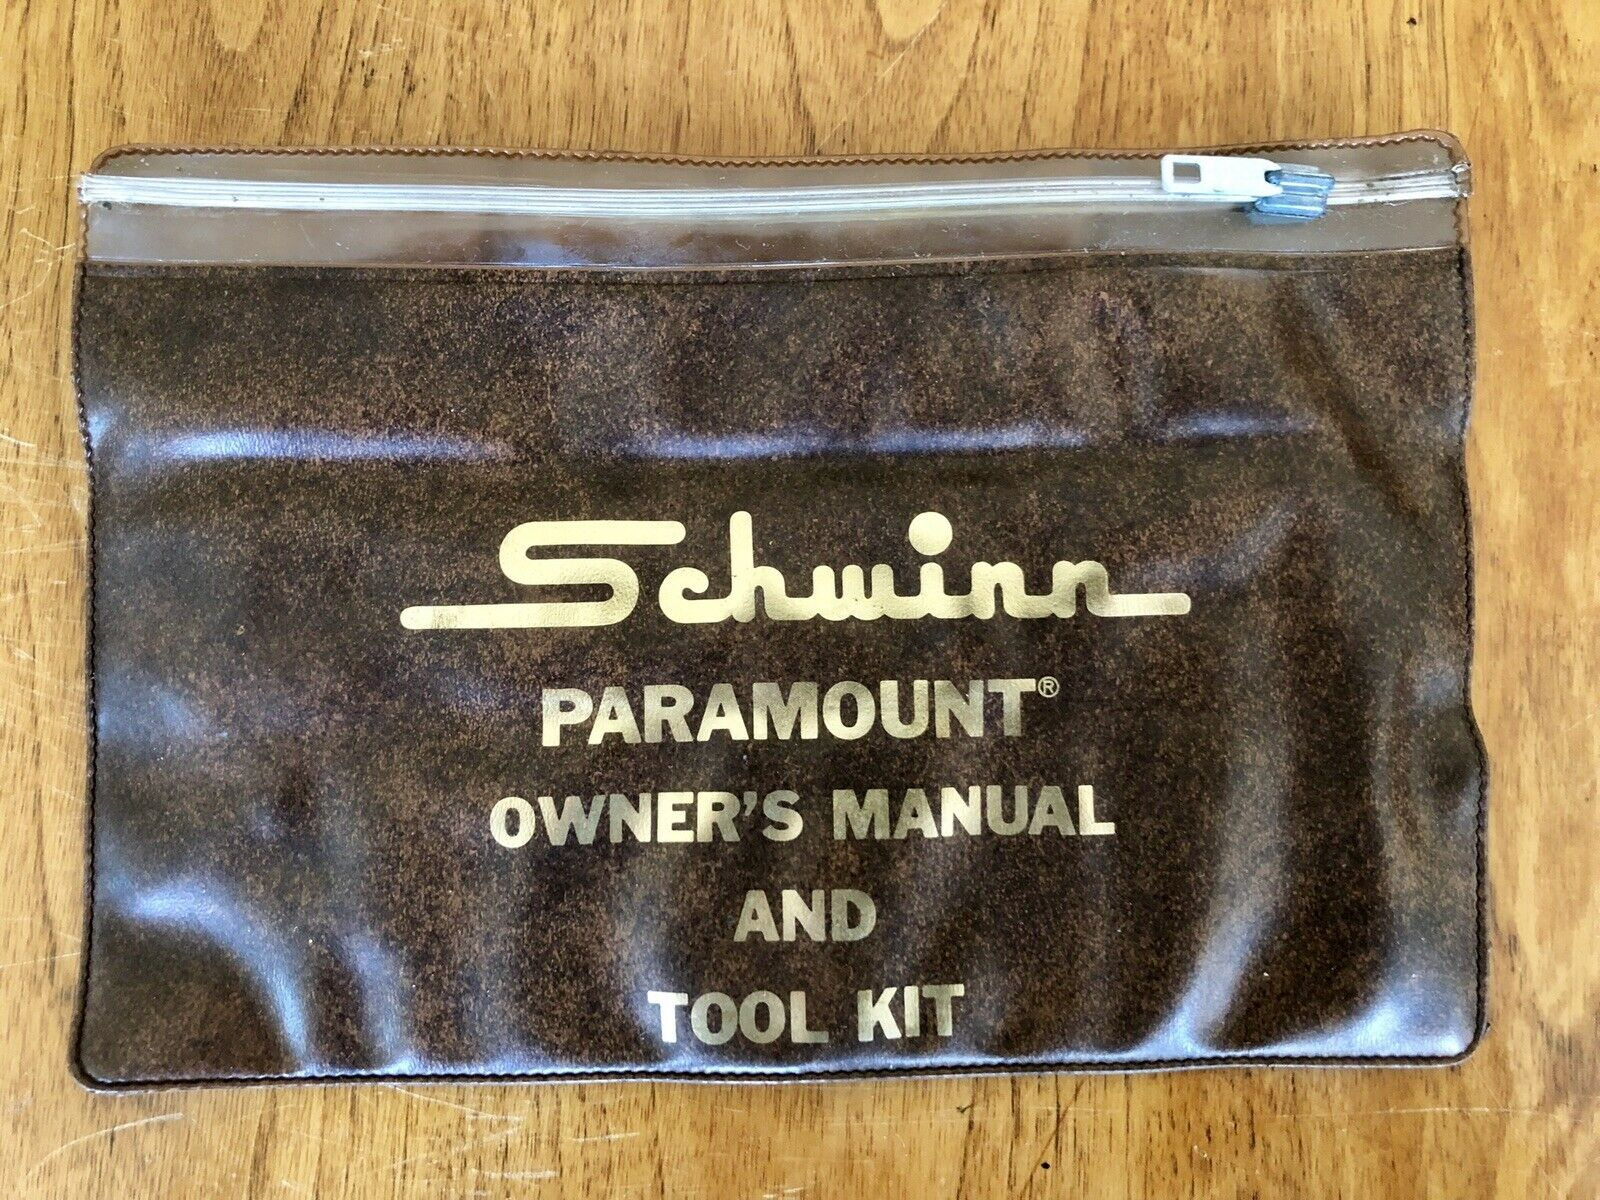 Vintage Schwinn Paramount Owner's Manual And Tool Kit Pouch  W  Campagnolo Tools  factory direct and quick delivery